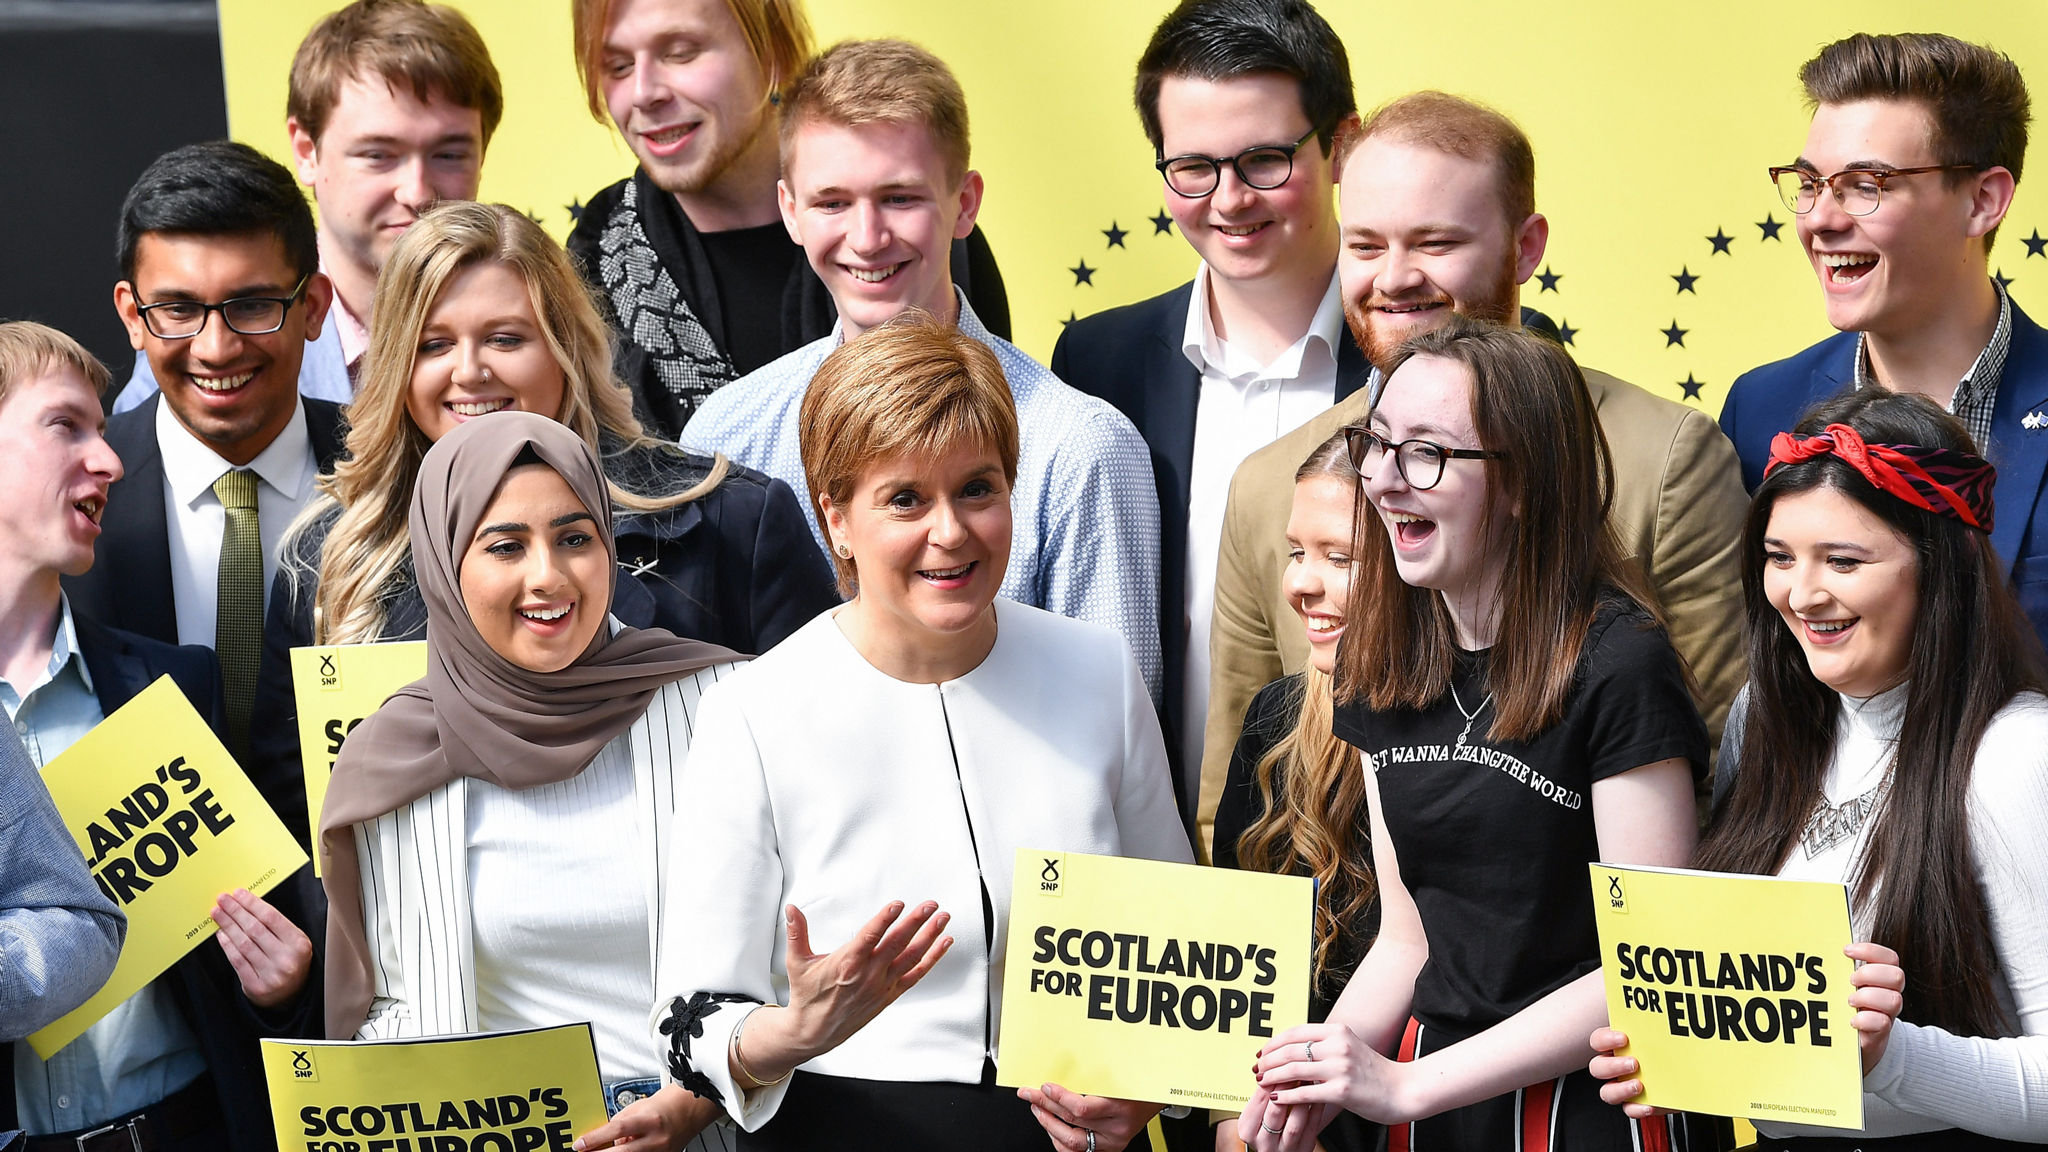 GLASGOW, SCOTLAND - MAY 17: Nicola Sturgeon joins SNP candidates to launch the partys manifesto for the European election Barras Art and Design on May 17 in Glasgow, Scotland. Launching the Scottish National Partys European Parliament election manifesto today, First Minister and party leader Nicola Sturgeon made clear that next weeks vote is a chance to reassert Scotlands opposition to Conservative plans to take the country out of the EU against its will, and to stop Brexit in its tracks. (Photo by Jeff J Mitchell/Getty Images)